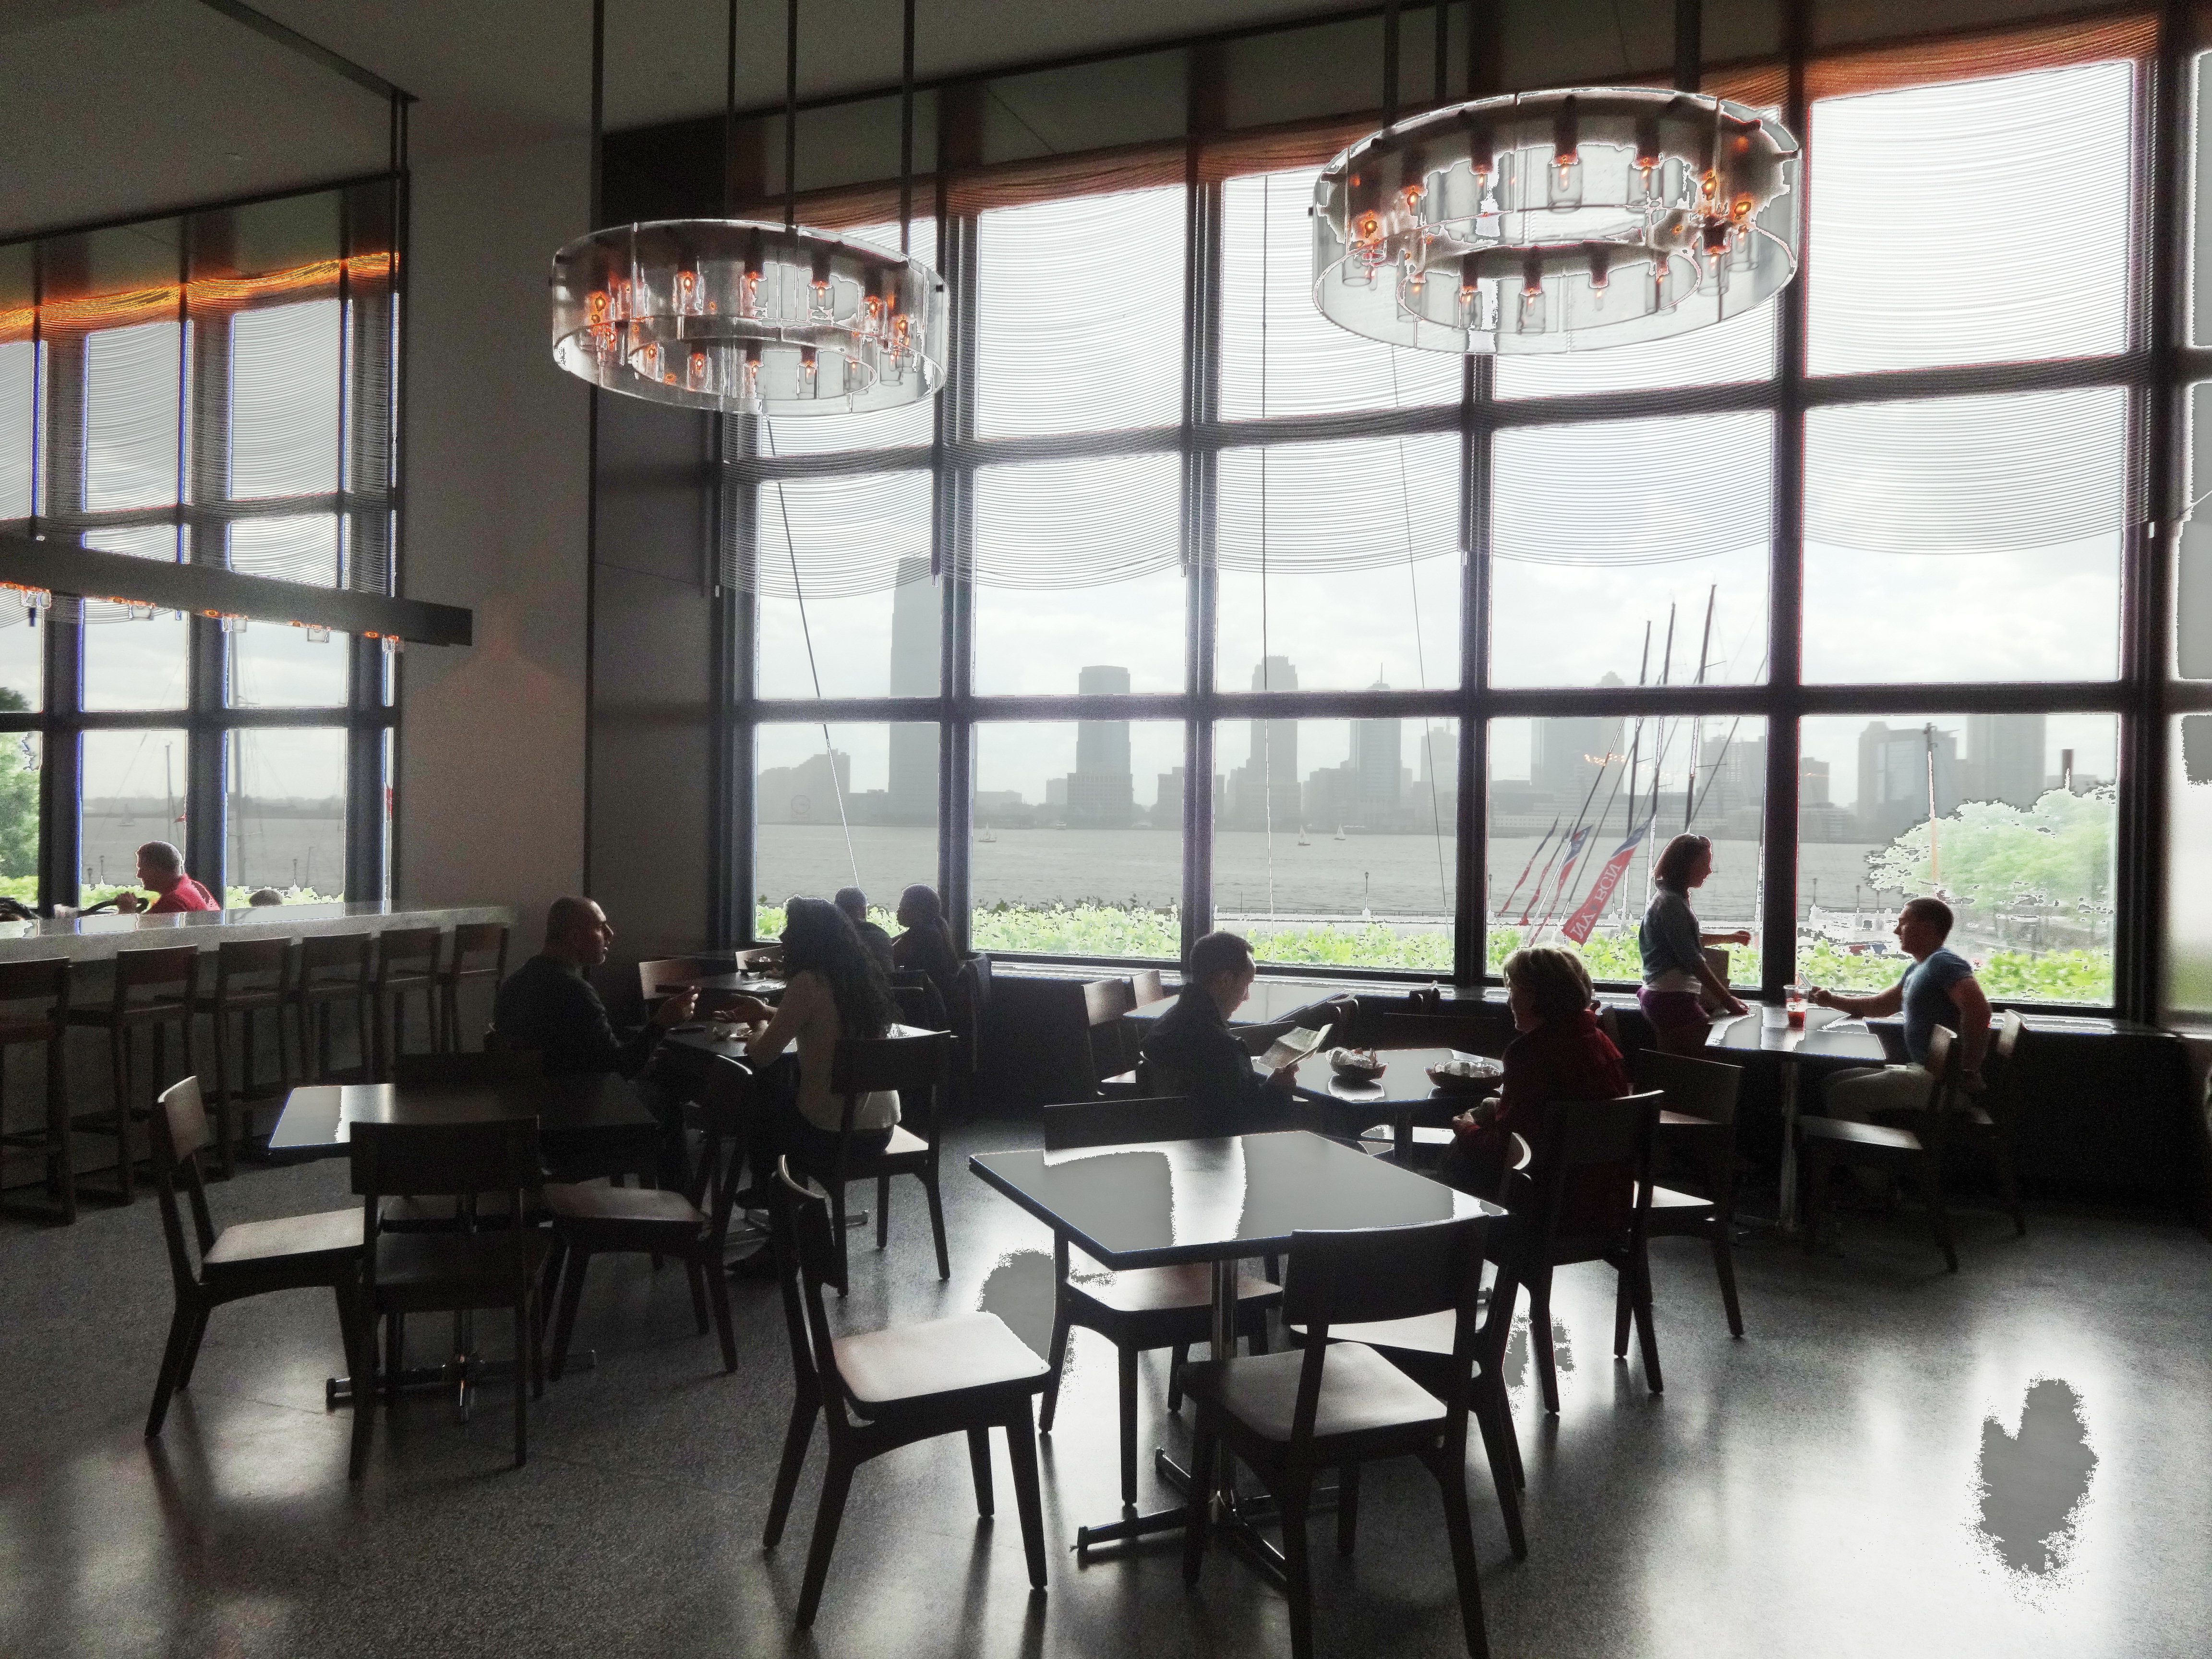 Hudson Eats Views From Hudson Eats In Brookfield Place  Batterypark.tv We Inform